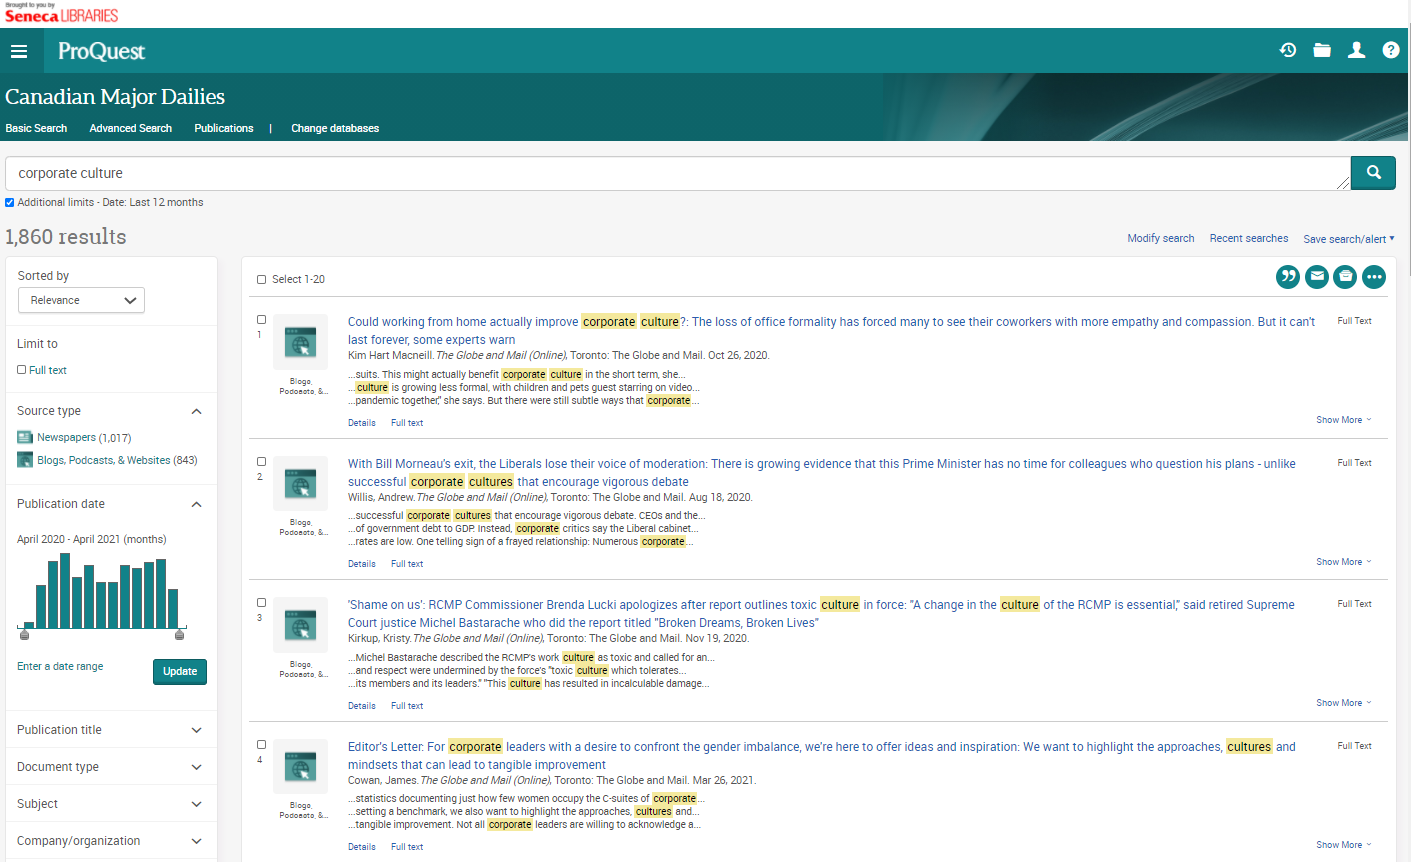 Search results in Canadian Major Dailies for keywords corporate culture, in the last 12 months